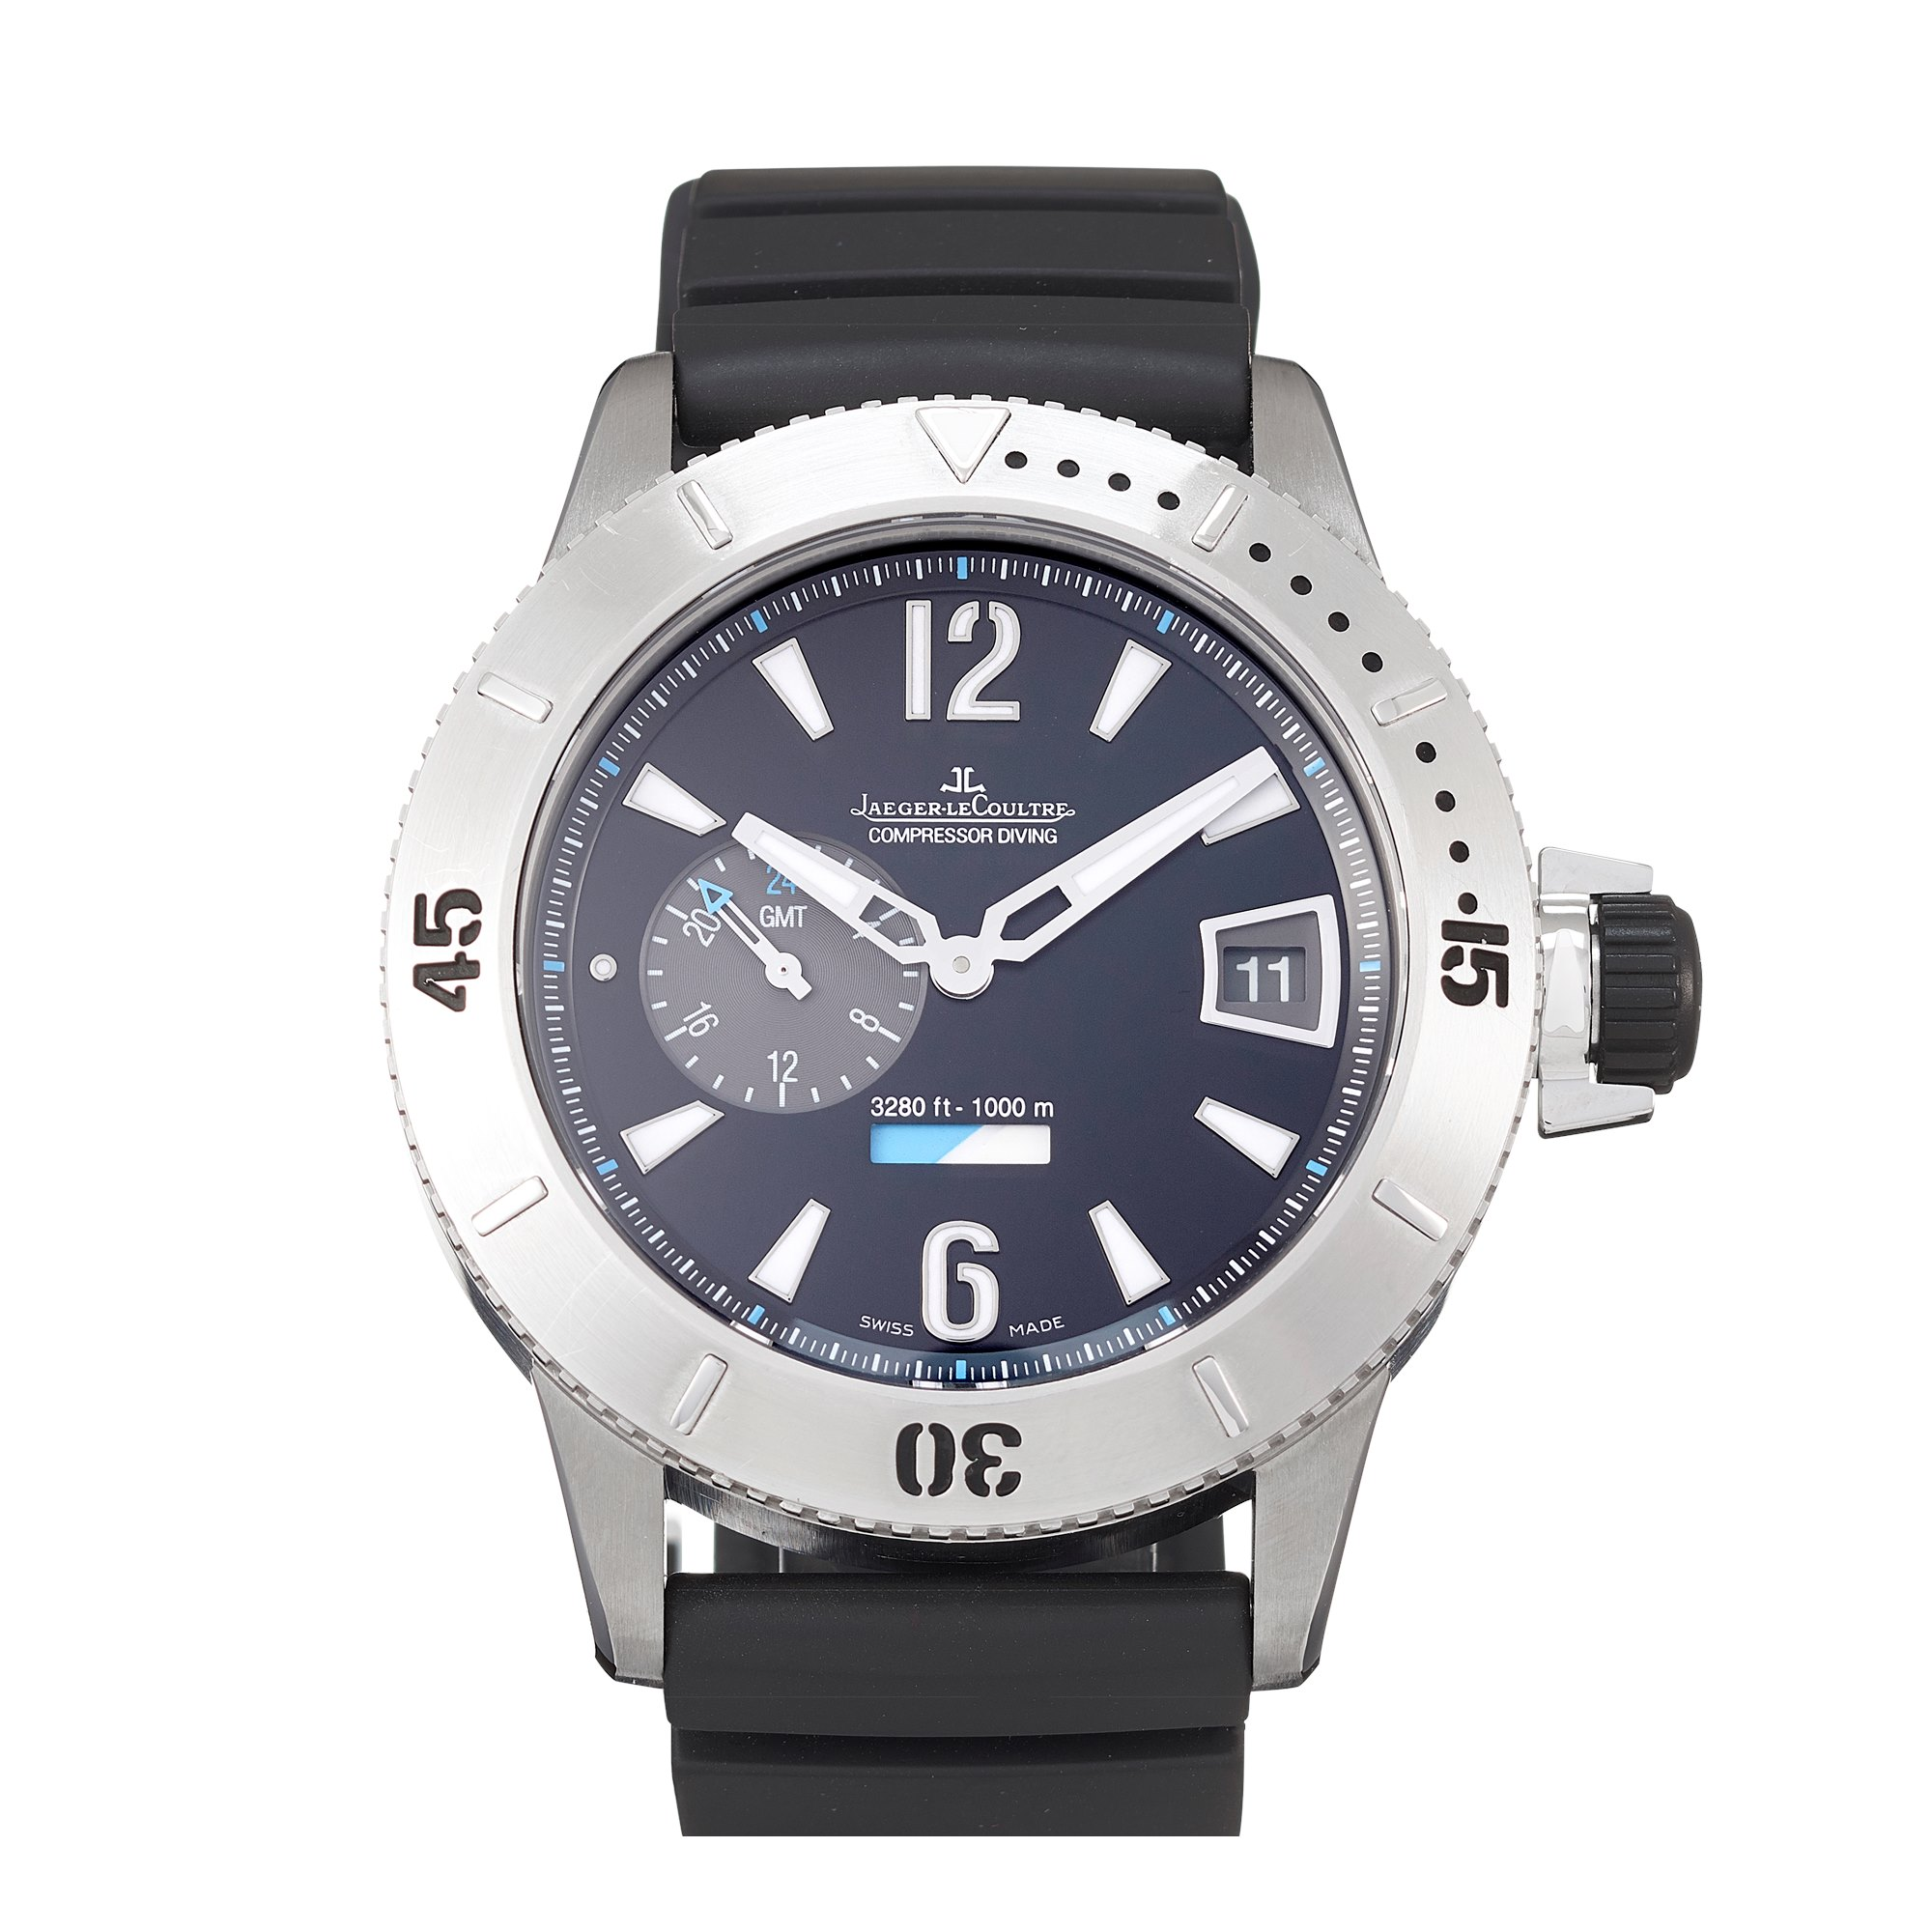 Jaeger-LeCoultre Master Compressor Diving GMT Stainless Steel 159.T.05